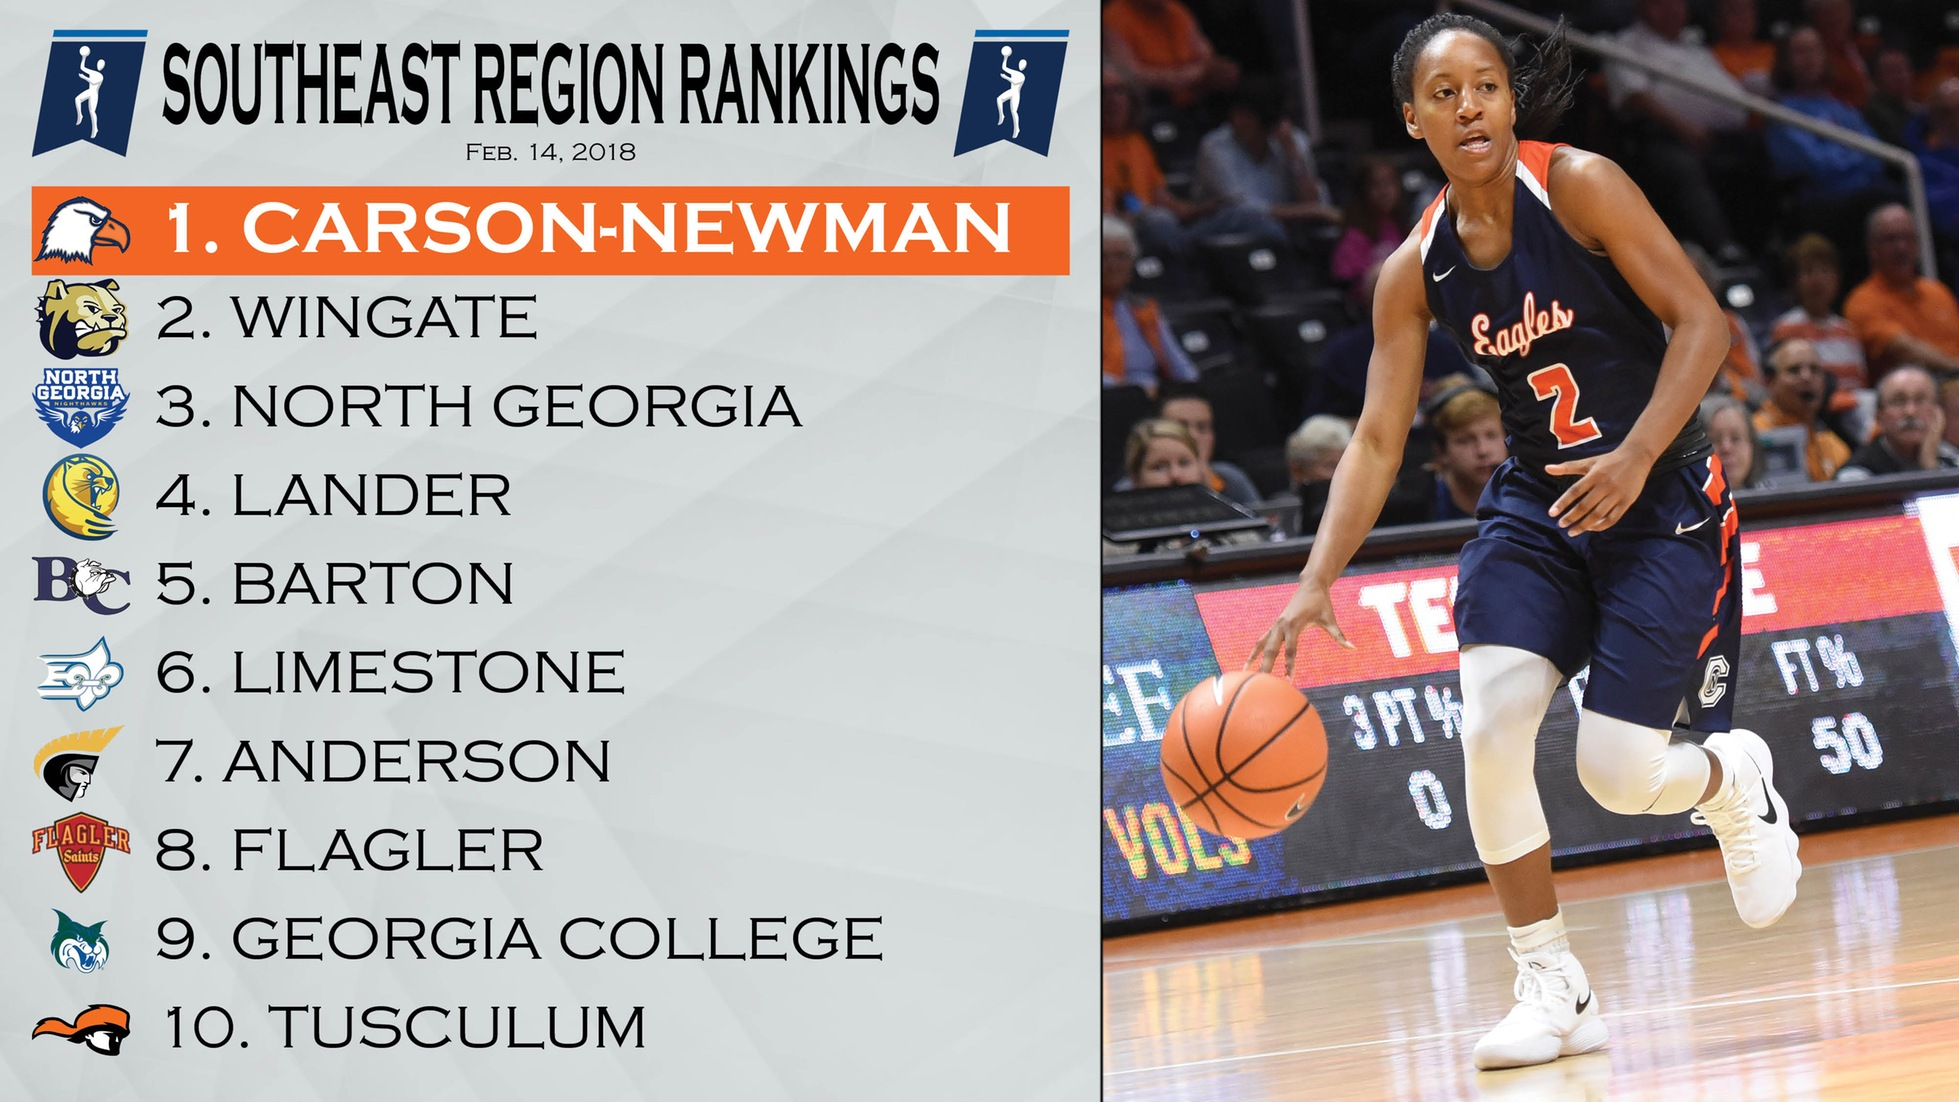 C-N holds top spot in first NCAA Region Rankings